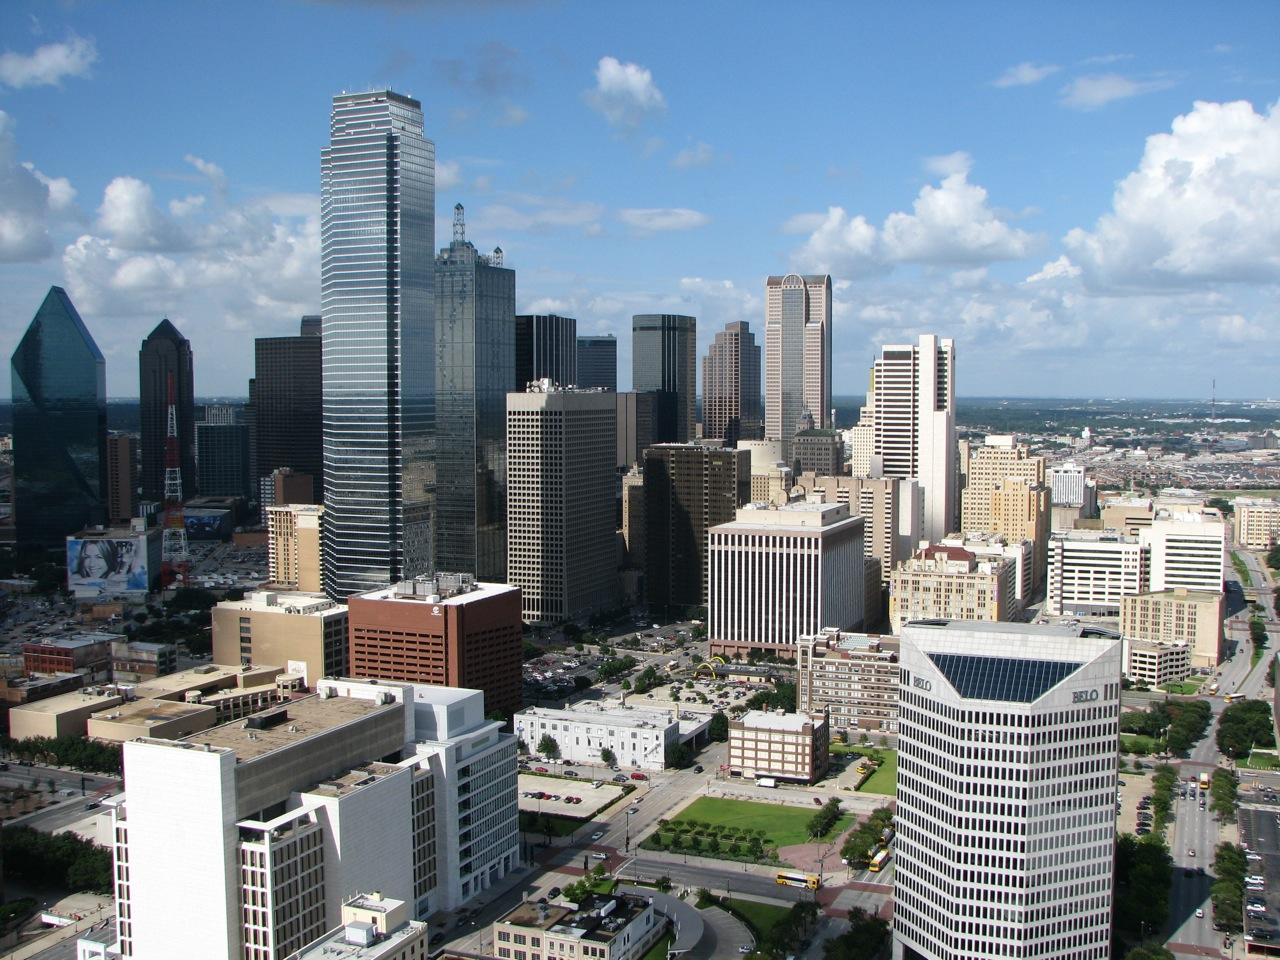 Save Big On Flights To Dallas, Texas